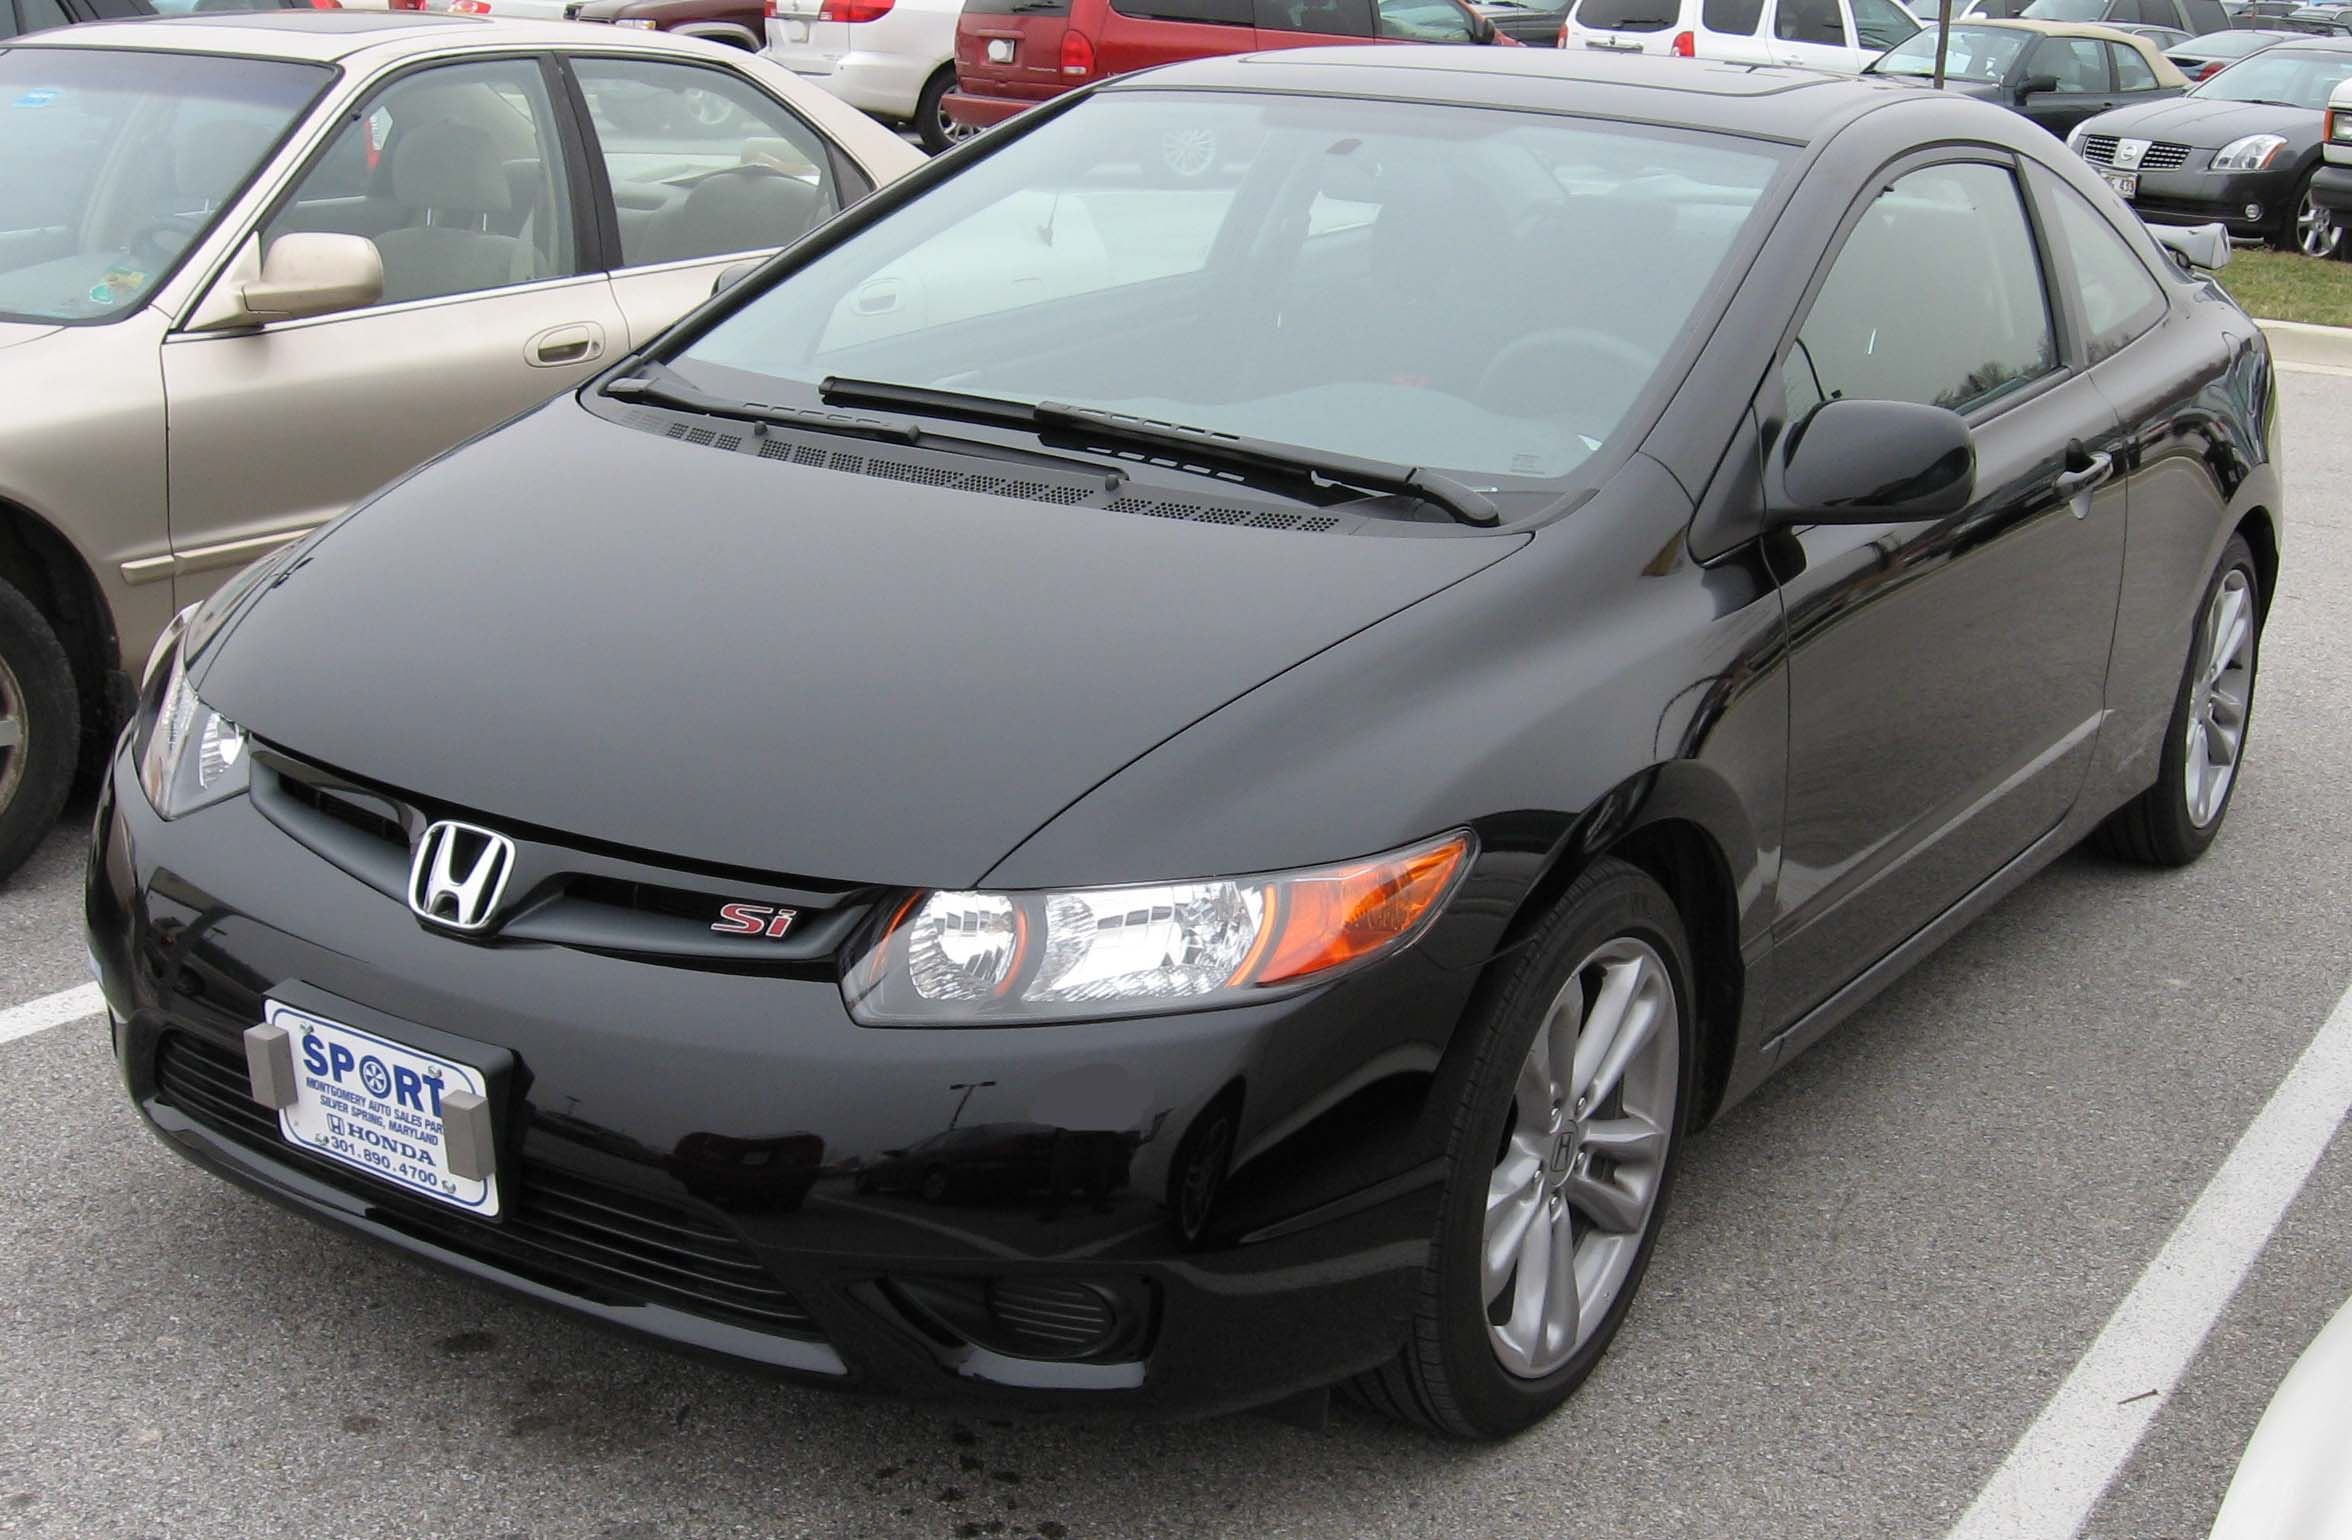 File:06 07 Honda Civic Si Coupe